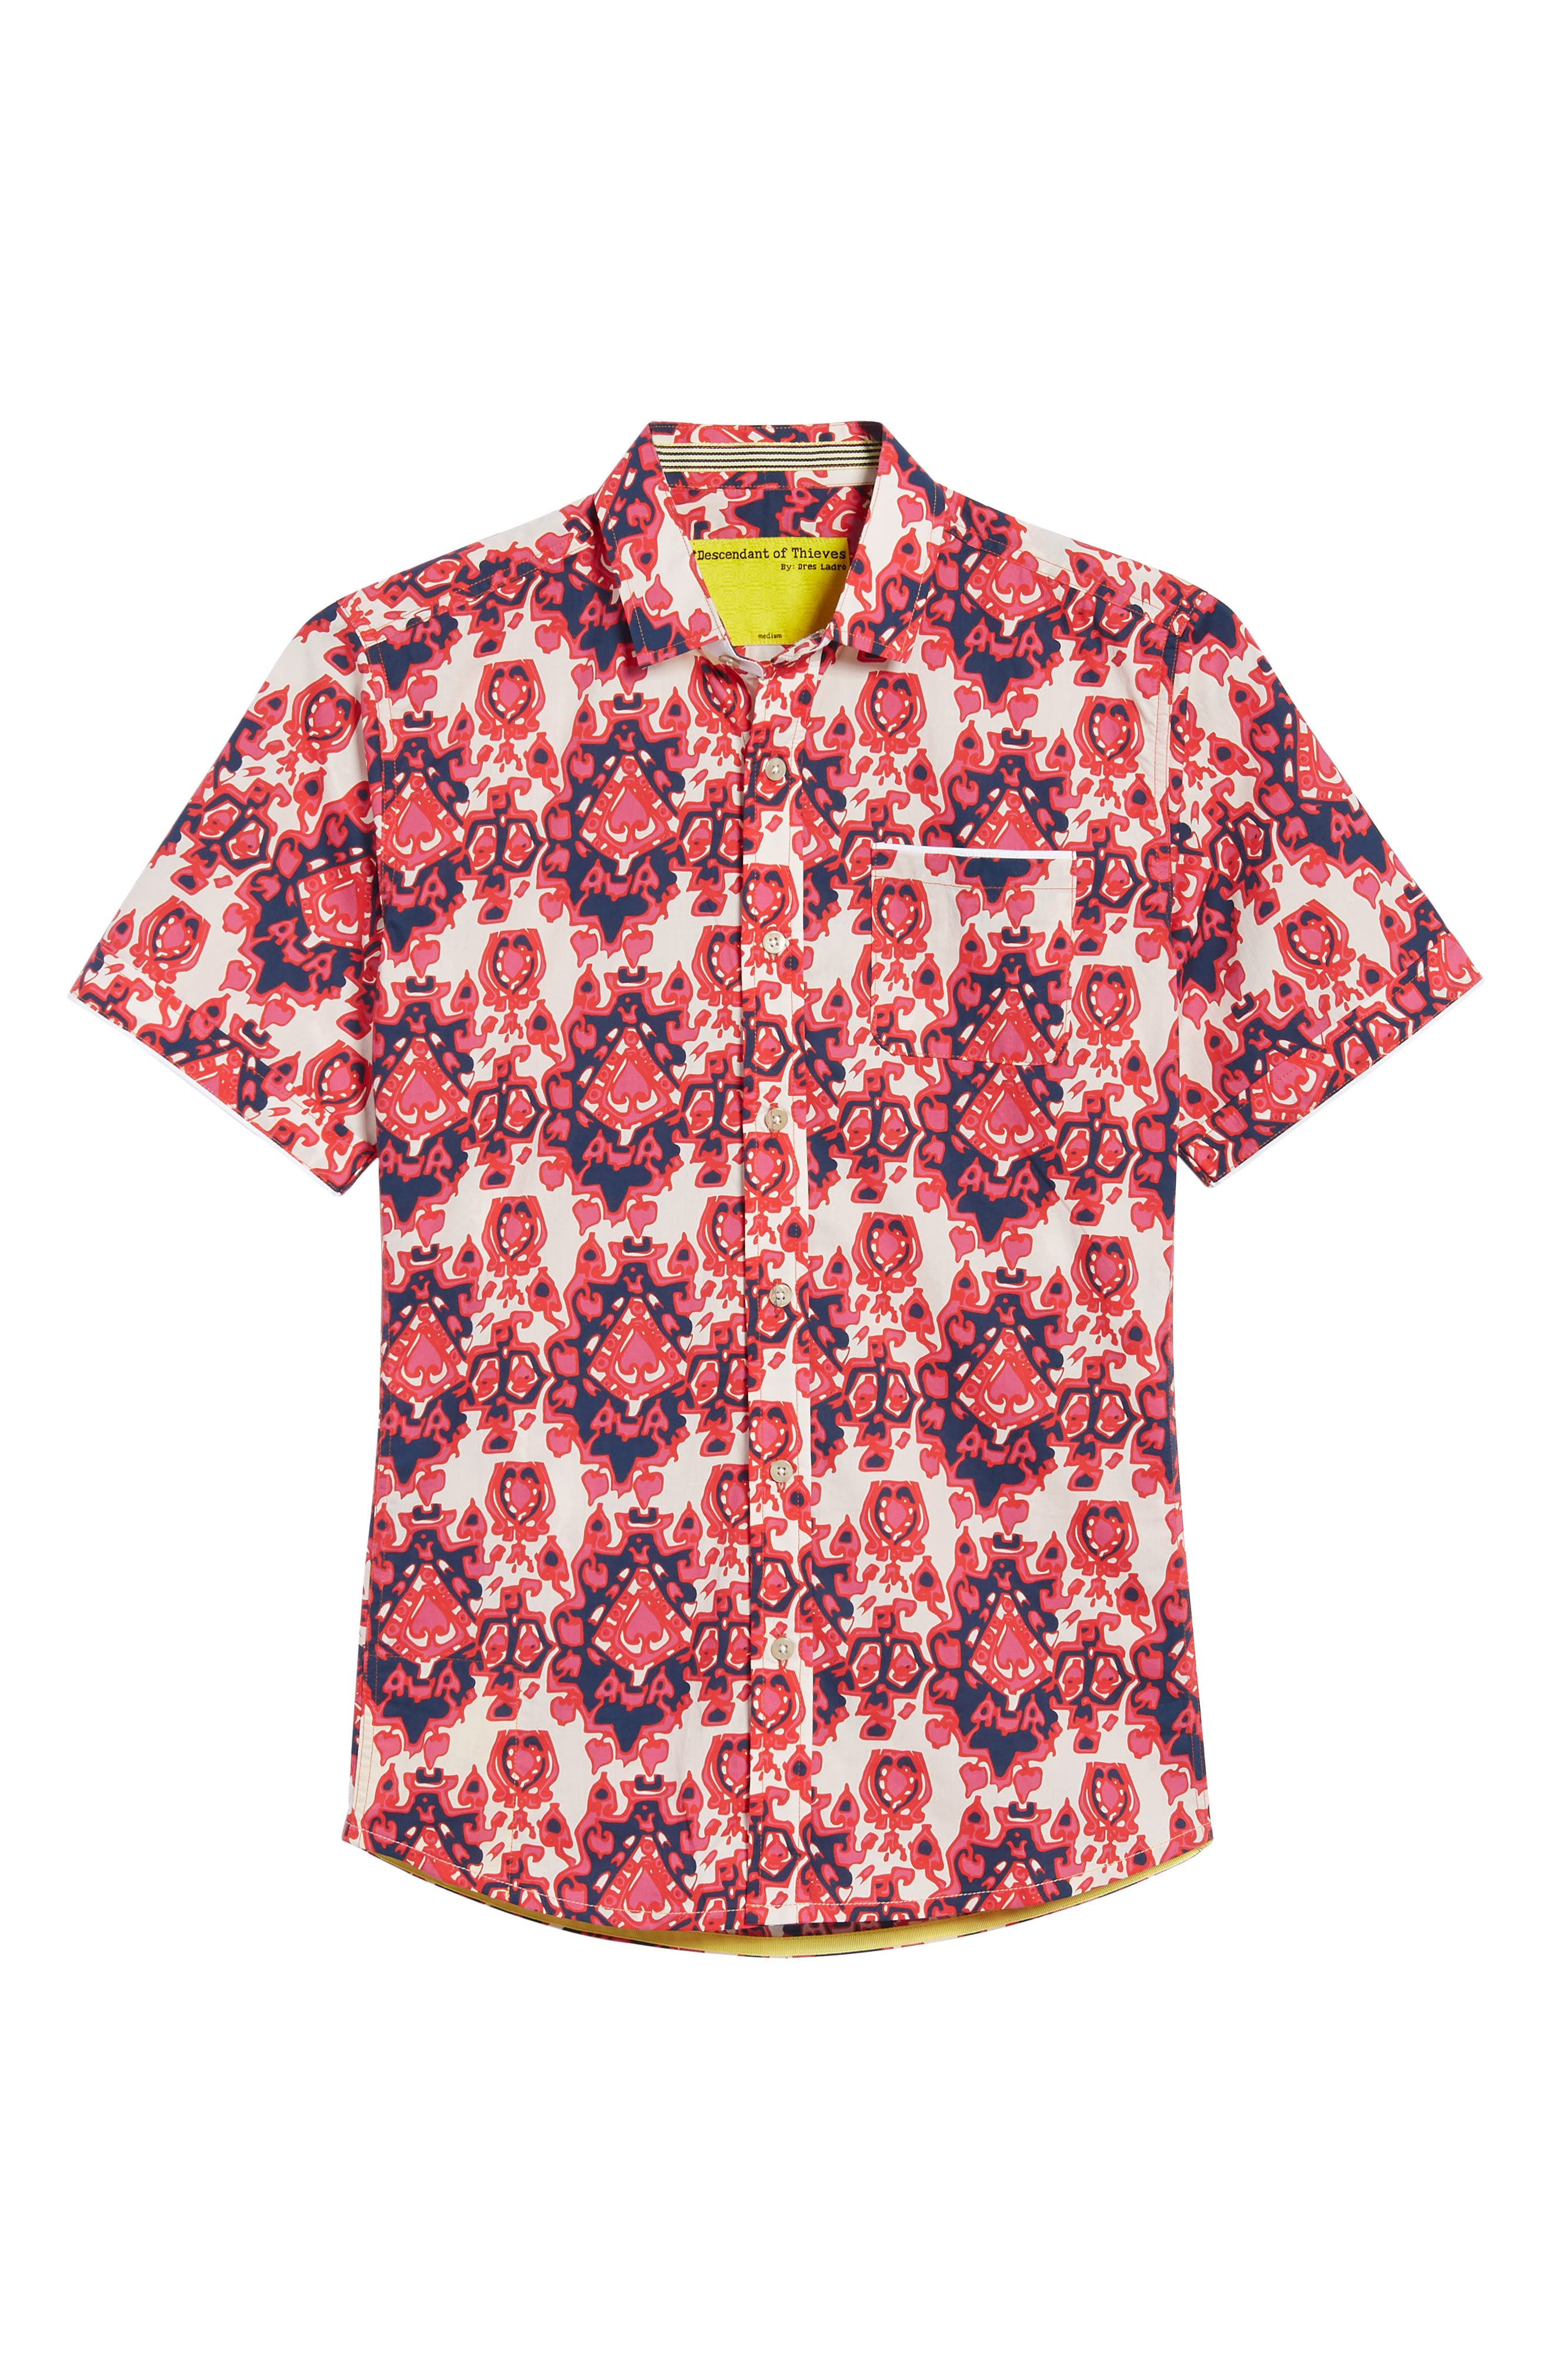 Abstract Culture Woven Shirt,                             Alternate thumbnail 6, color,                             600